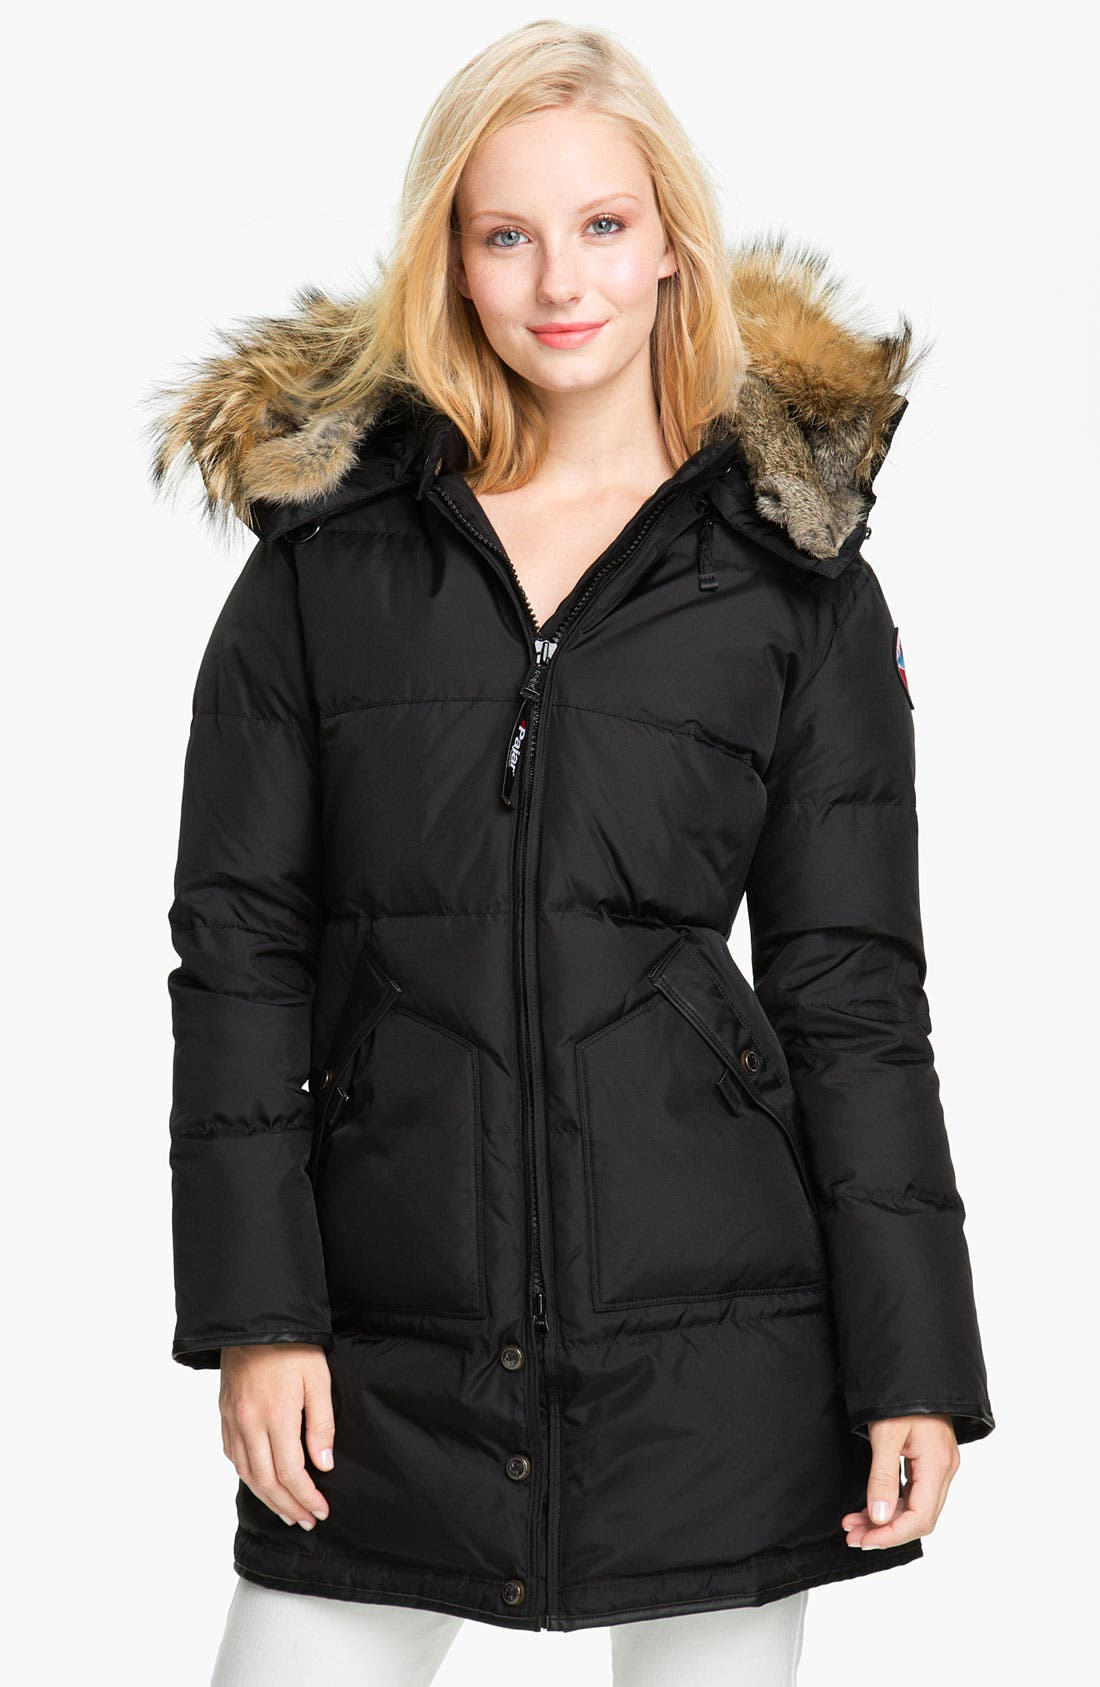 'Cougar' Down Parka with Genuine Coyote & Rabbit Fur,                             Main thumbnail 1, color,                             001